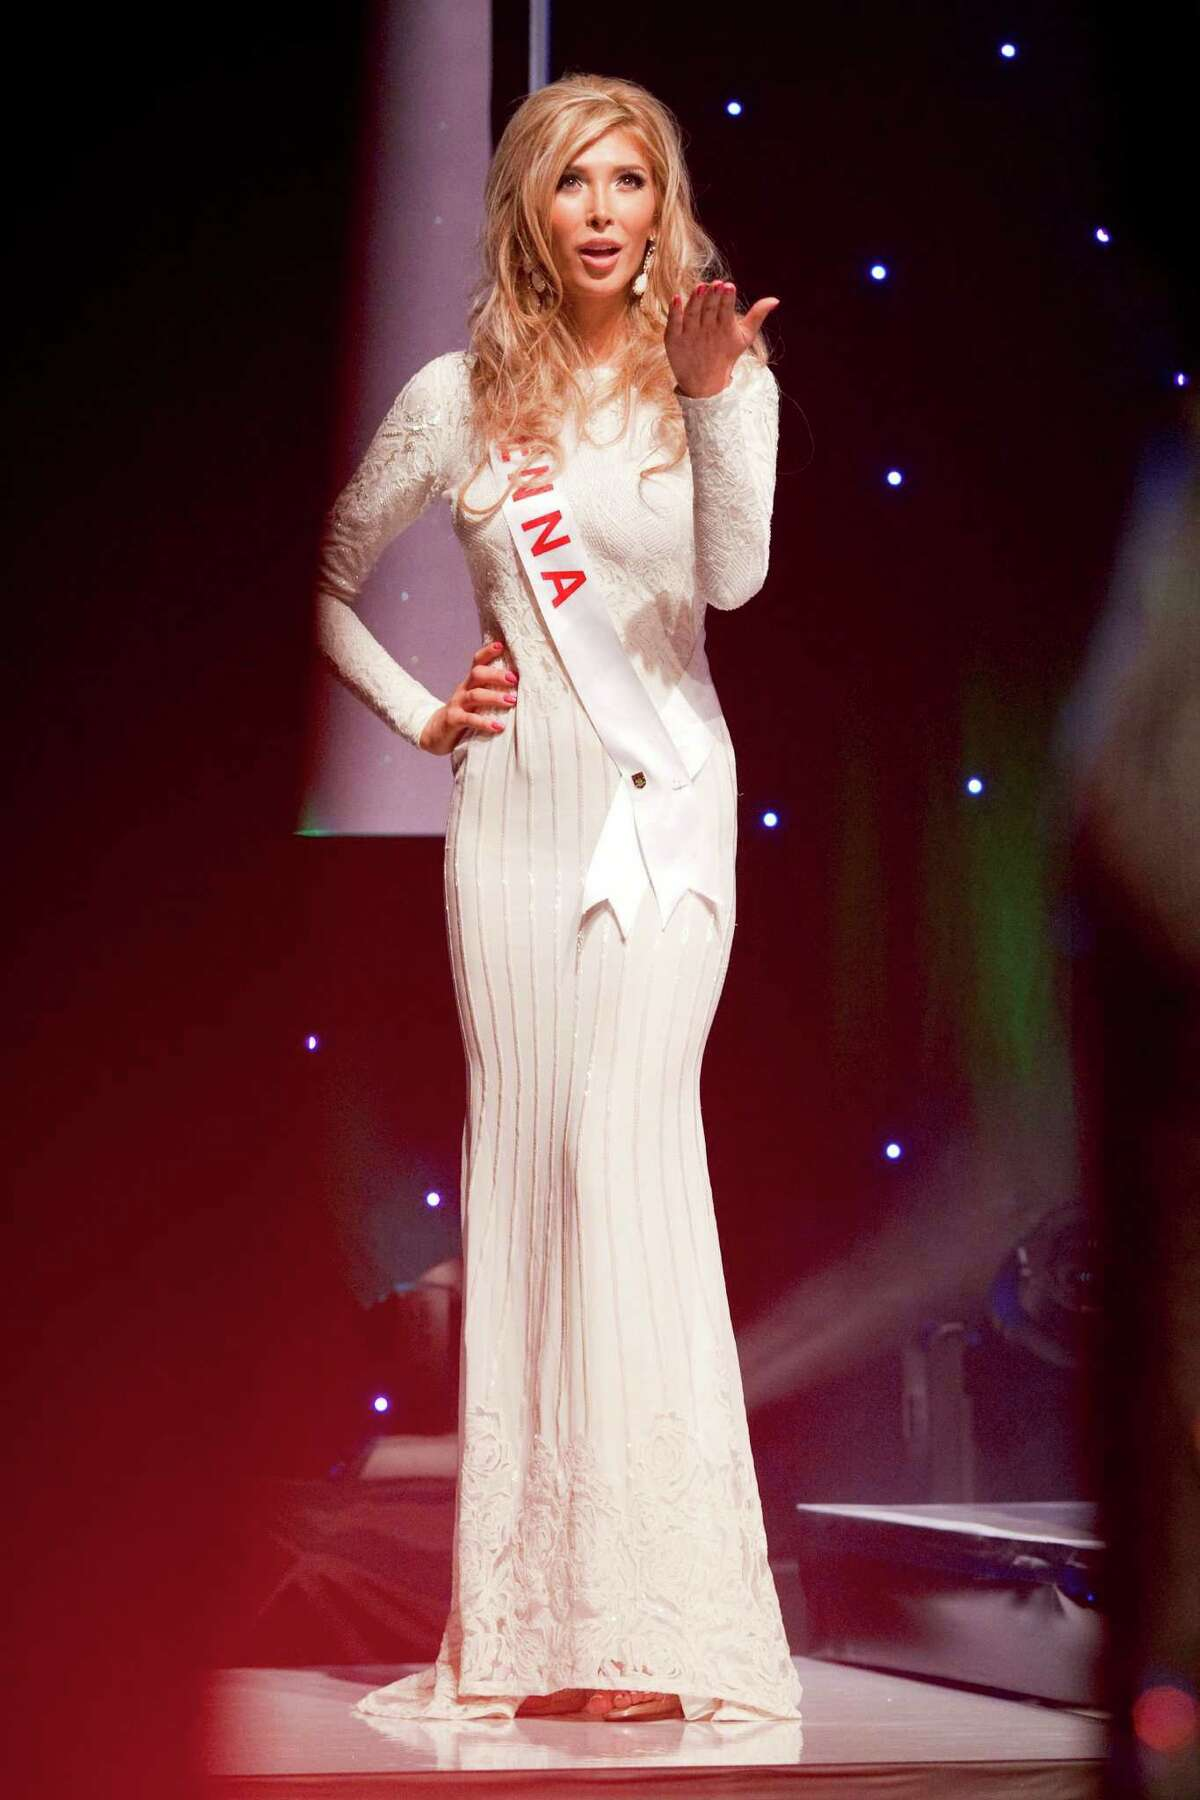 Transgendered beauty queen Jenna Talackova appears in the Miss Universe Canada pageant in Toronto, on Saturday May 19, 2012. Talackova sparked global attention when she was initially disqualified from the pageant.